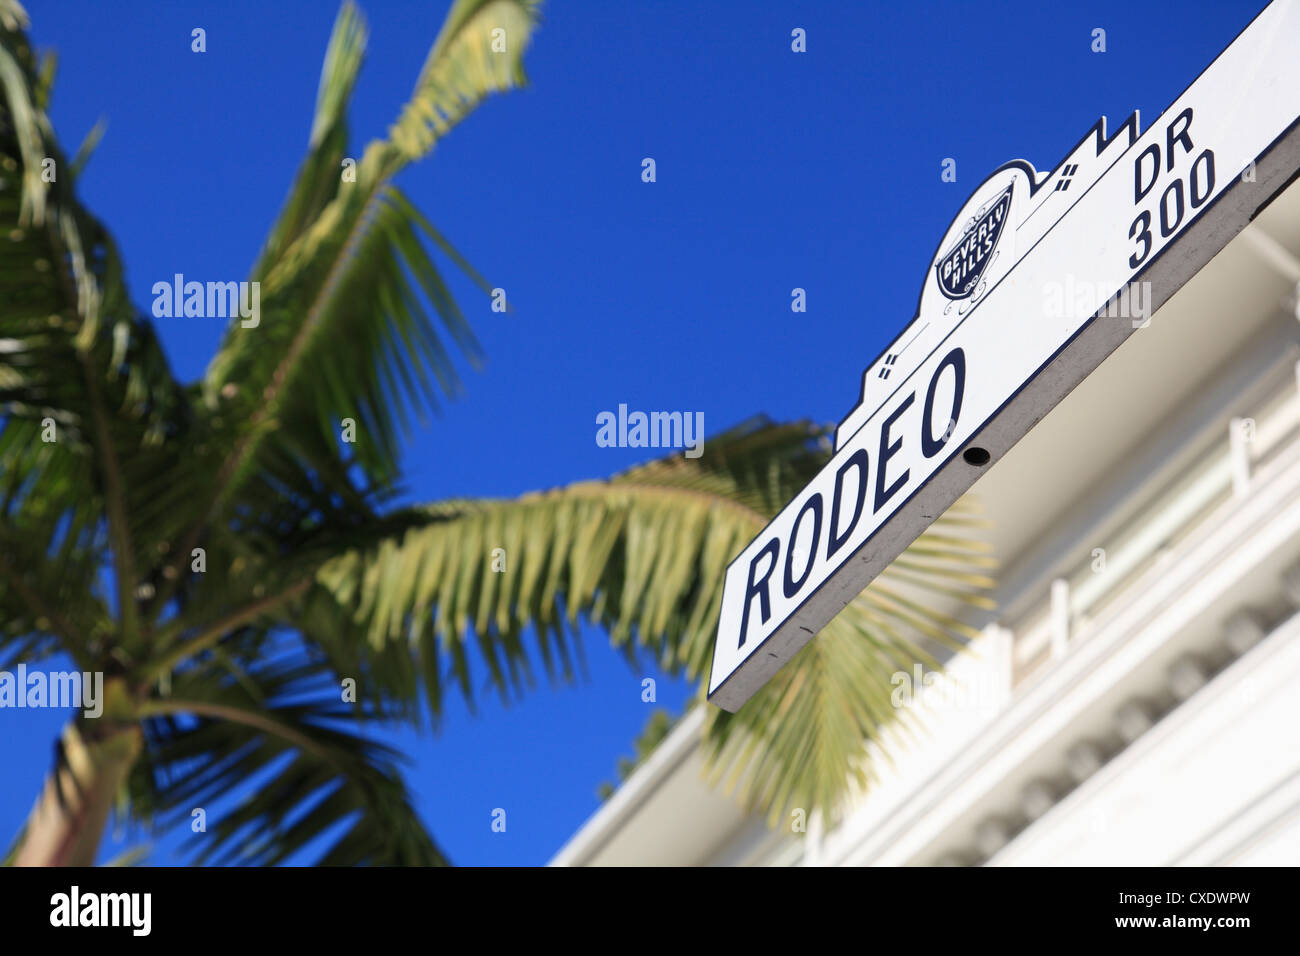 Road sign, Rodeo Drive, Beverly Hills, Los Angeles, California, USA - Stock Image